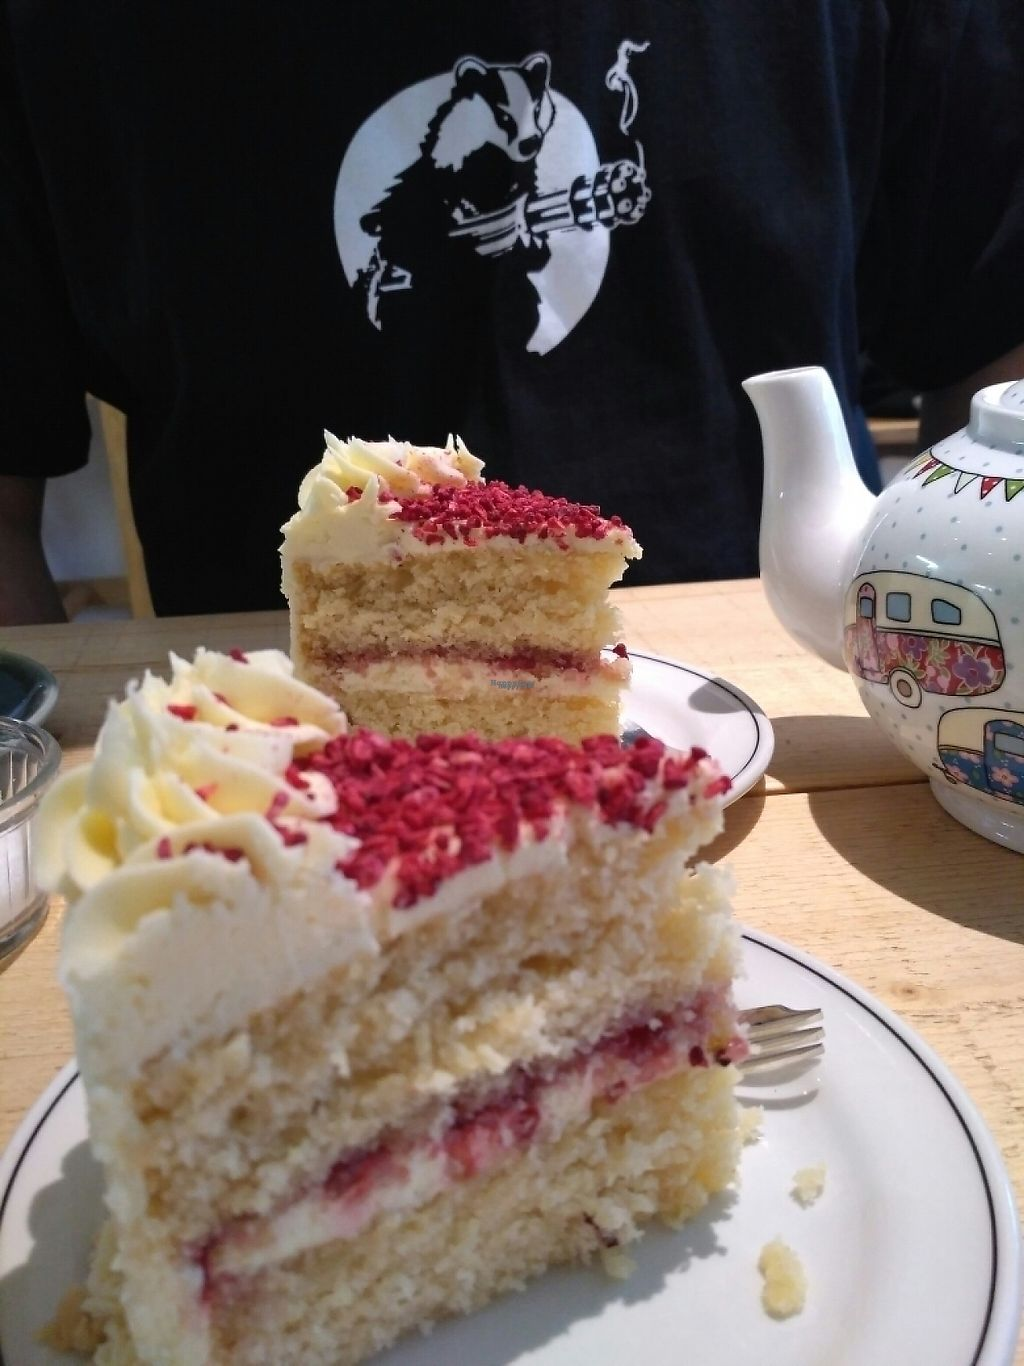 """Photo of Green Kitchen  by <a href=""""/members/profile/Miggi"""">Miggi</a> <br/>Victoria sponge cake with raspberries  <br/> November 26, 2016  - <a href='/contact/abuse/image/76632/194856'>Report</a>"""